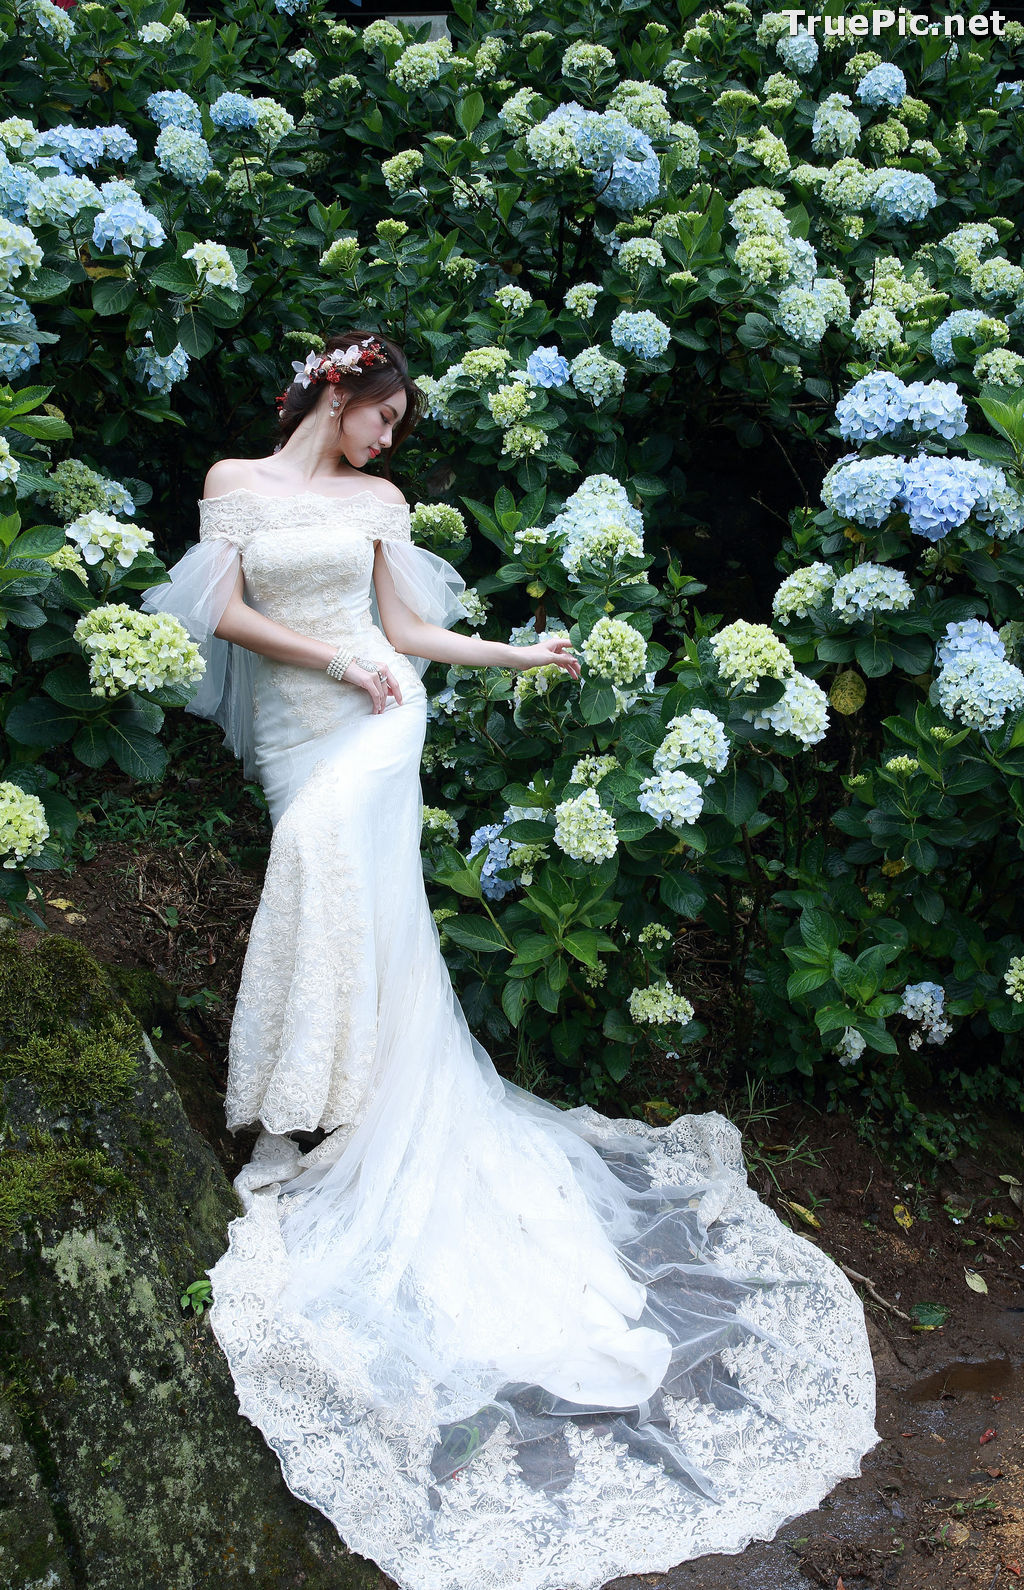 Image Taiwanese Model - 張倫甄 - Beautiful Bride and Hydrangea Flowers - TruePic.net - Picture-7